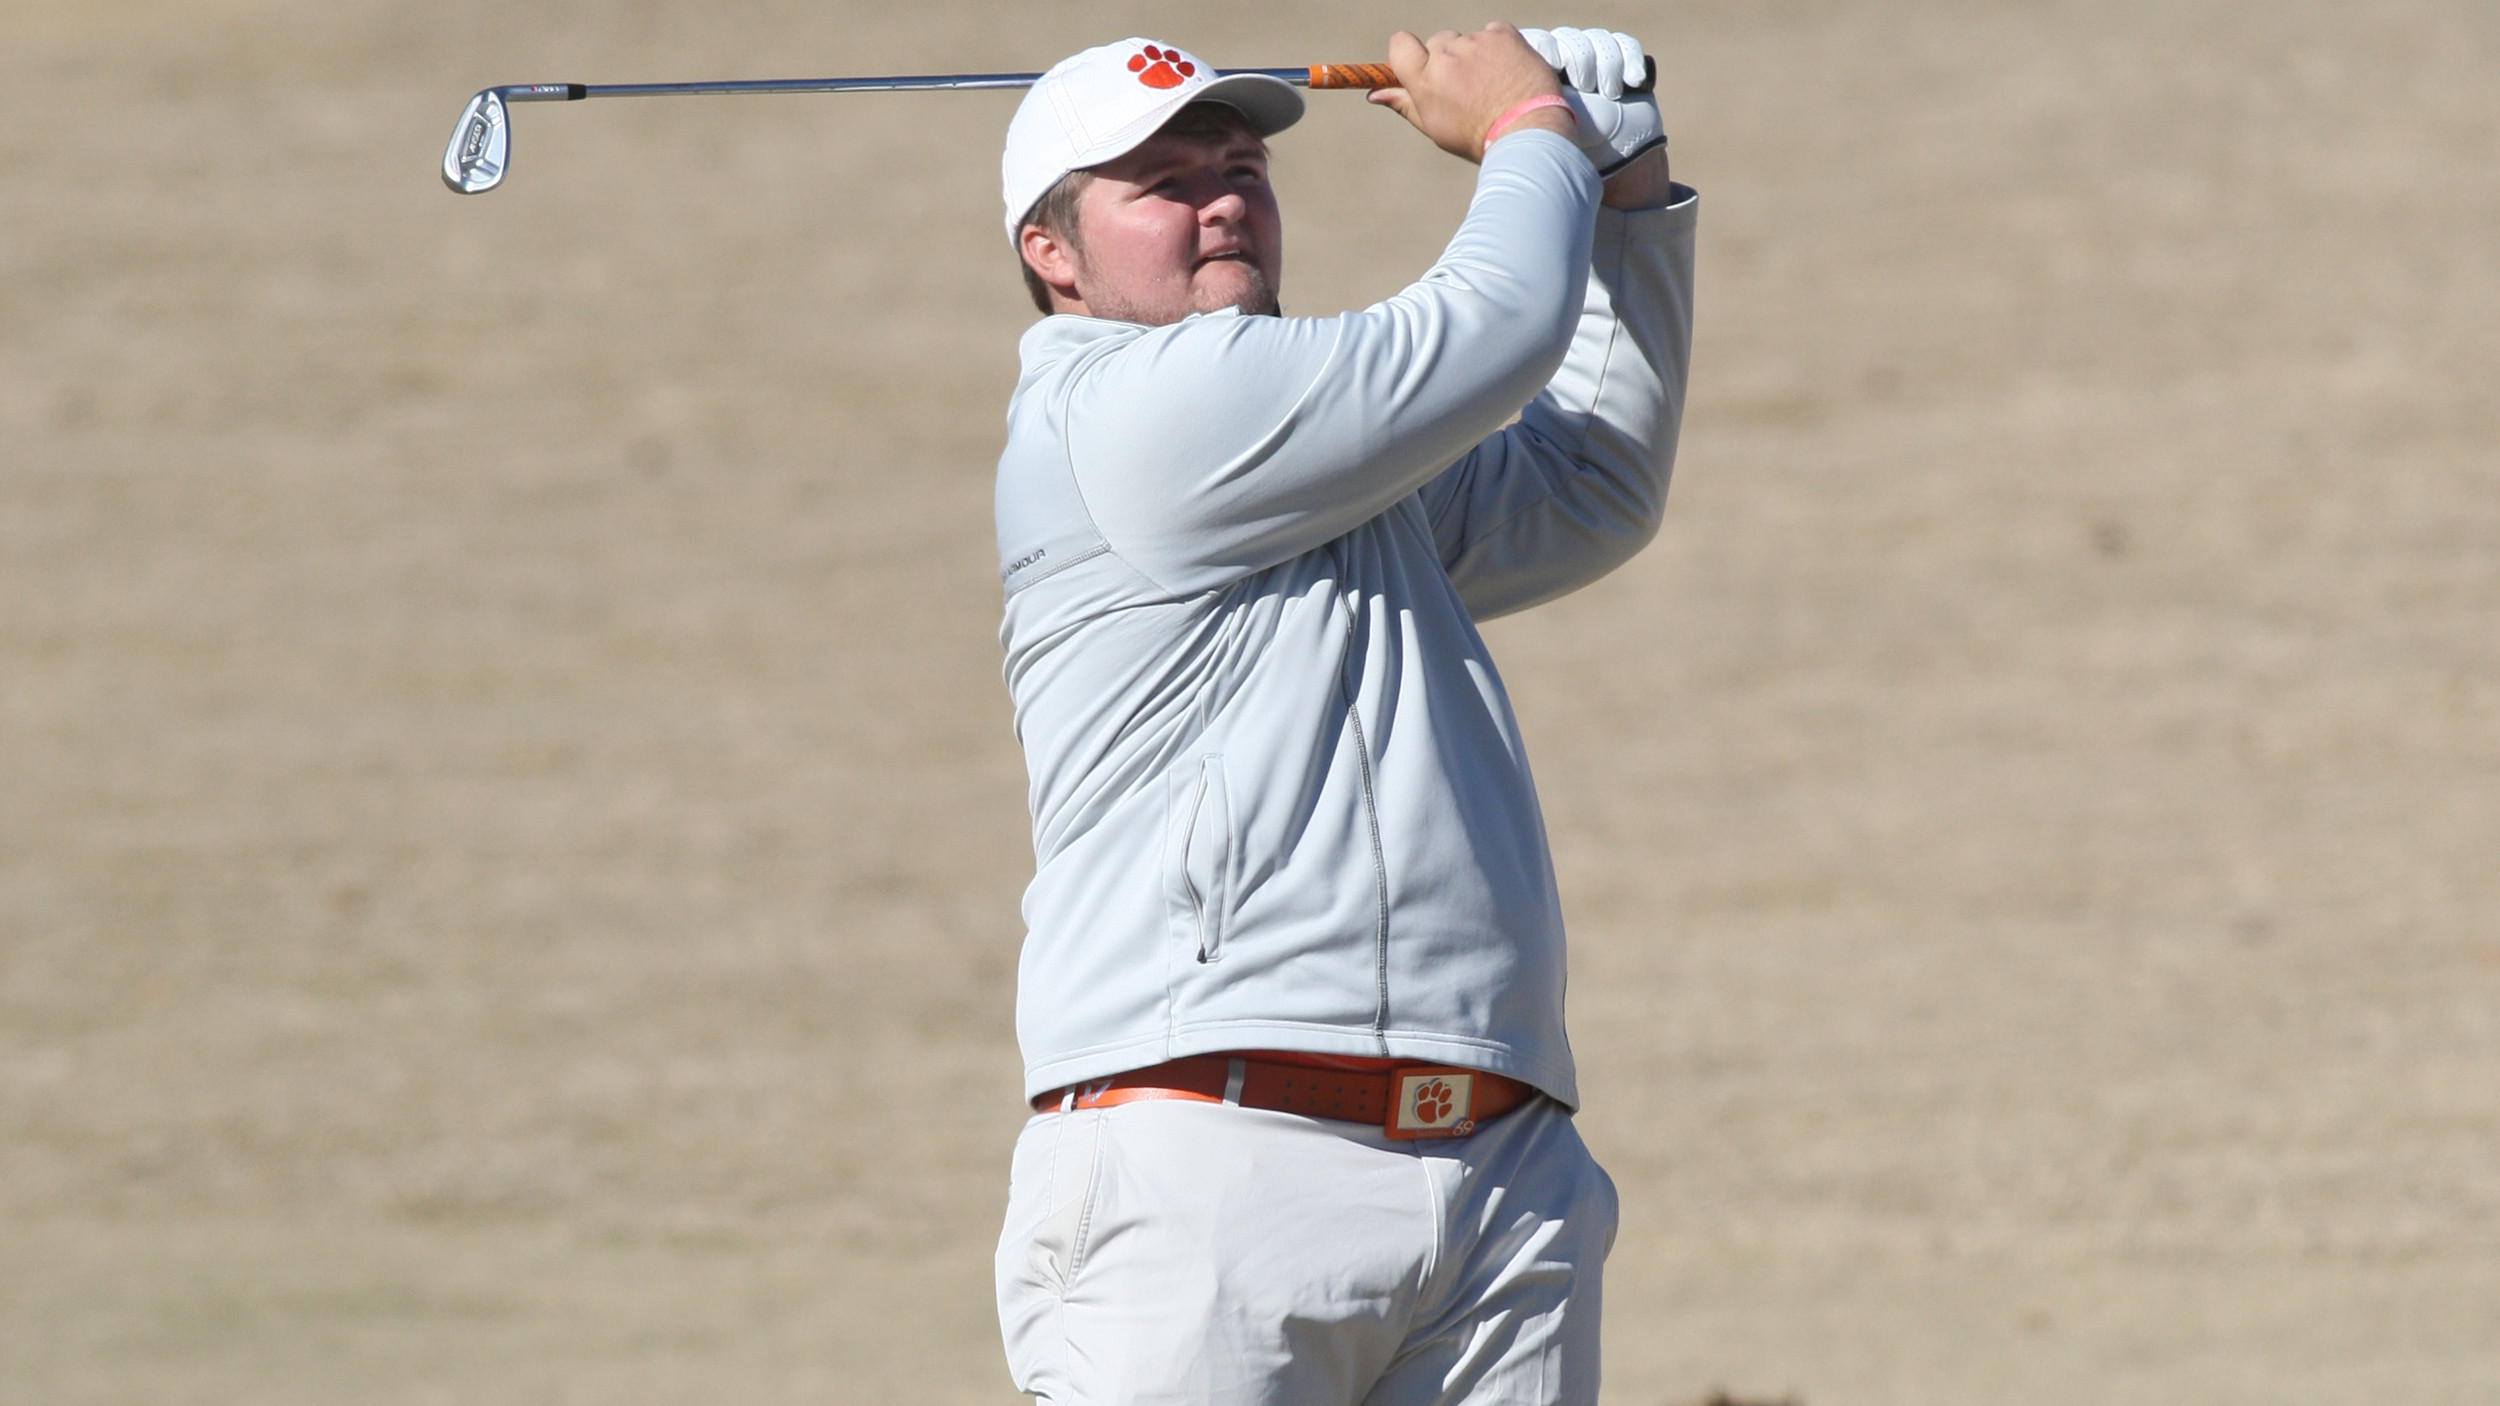 Proveaux Qualifies for US Open Sectional